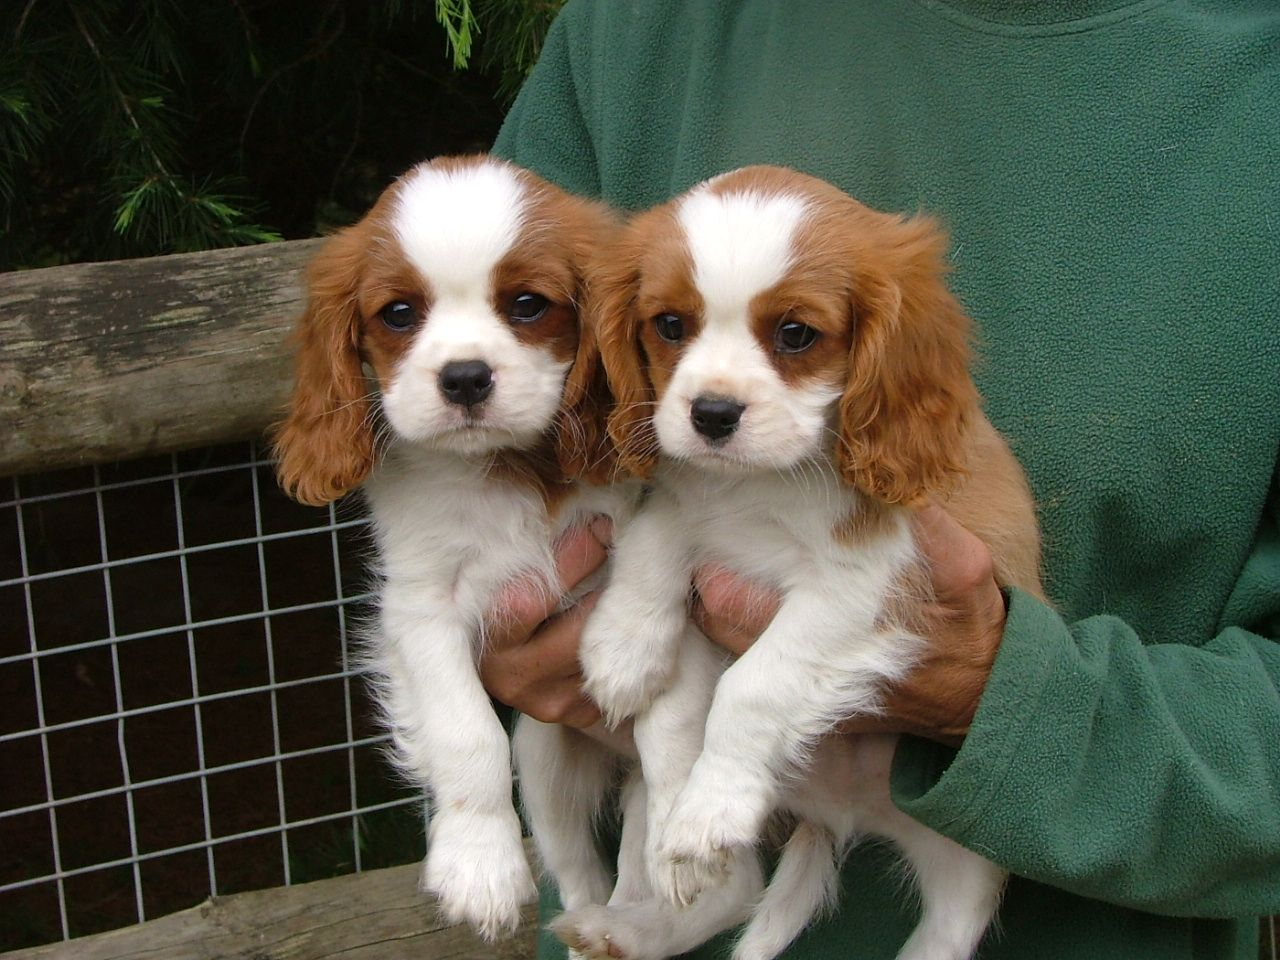 Buy Sell King Charles Spaniel Puppies Adopt Puppy Online In India